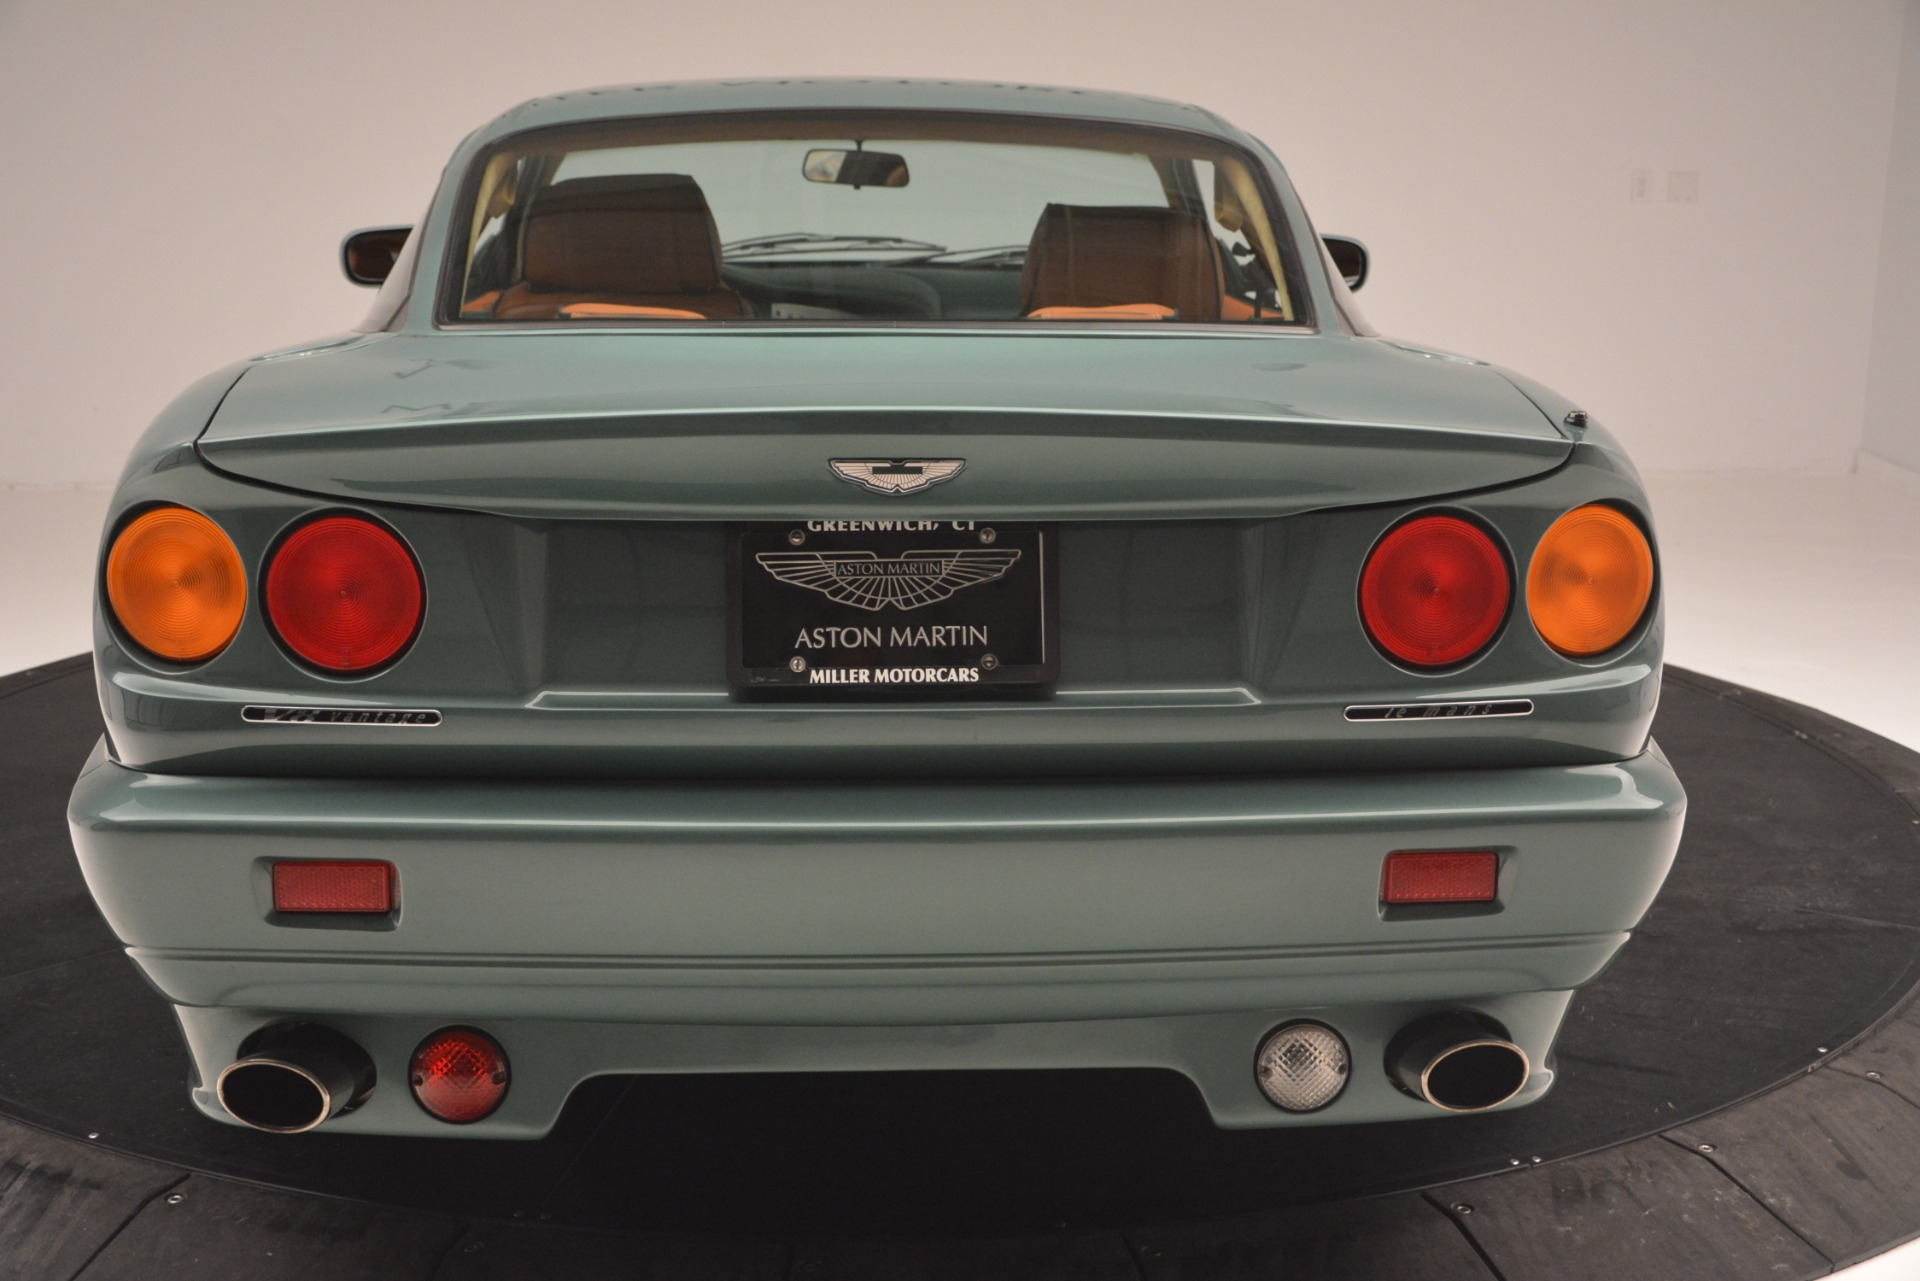 Used 1999 Aston Martin V8 Vantage Le Mans V600 Coupe For Sale In Greenwich, CT 2789_p42